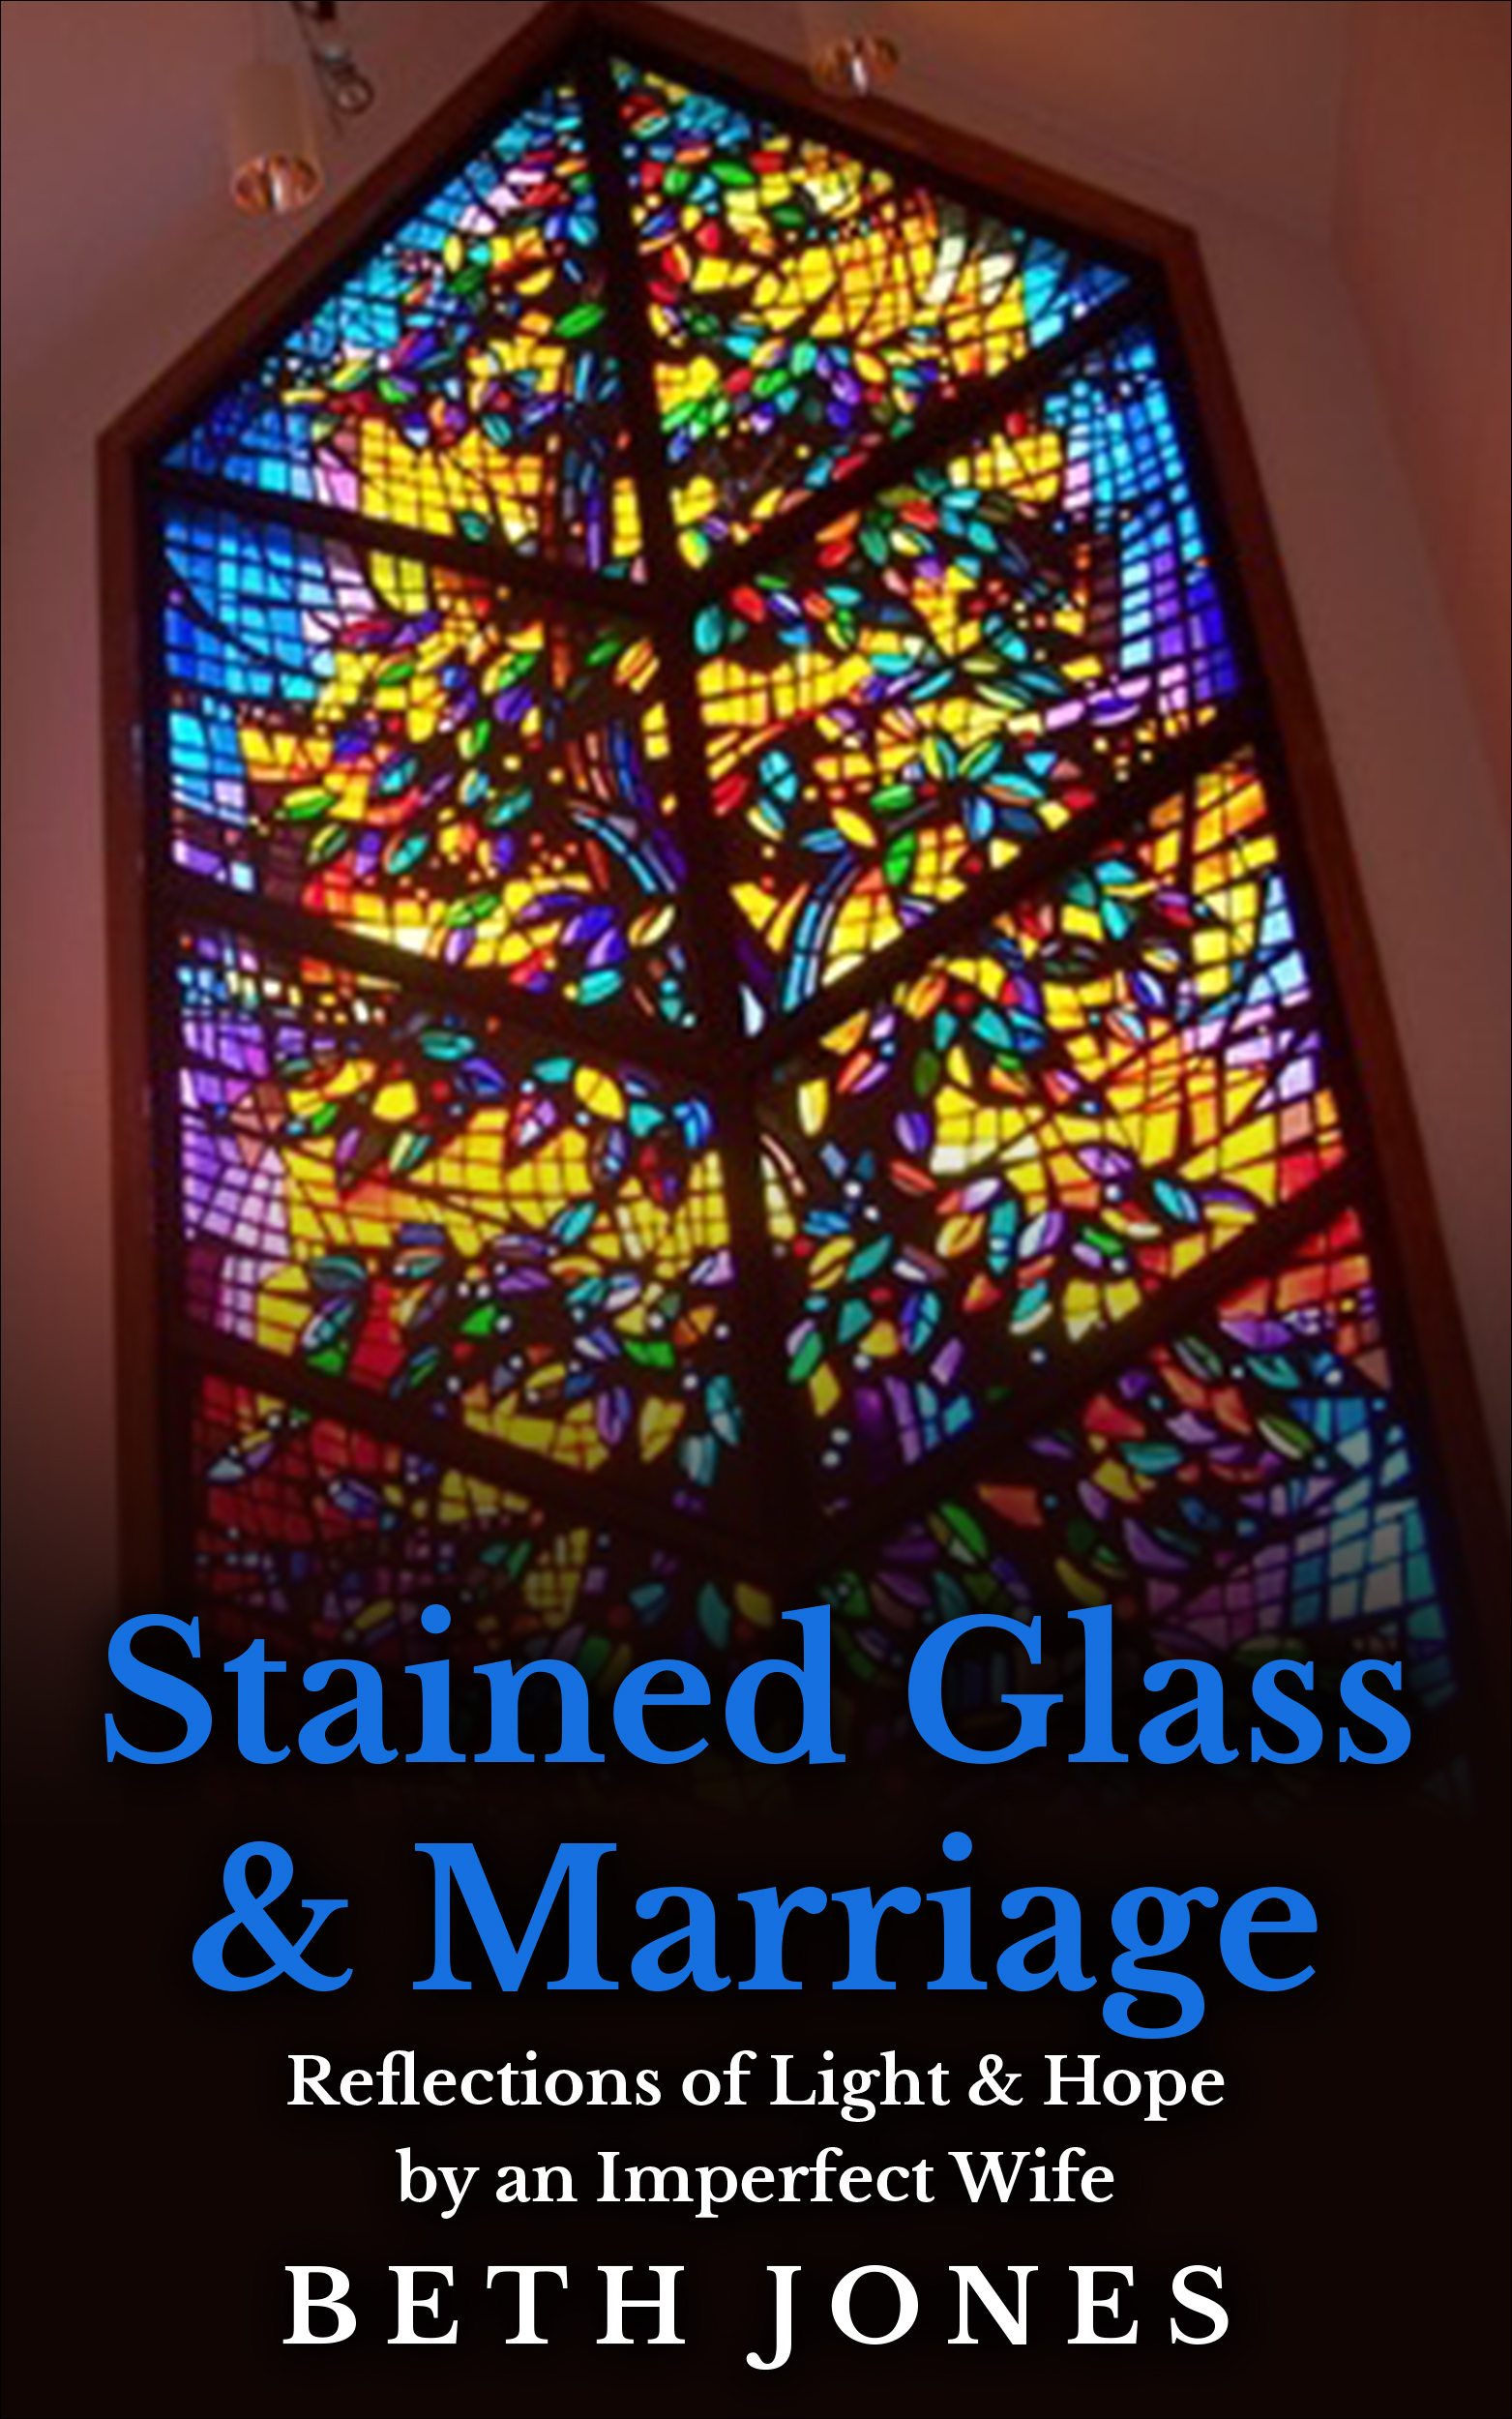 Get Beth's new book on marriage!